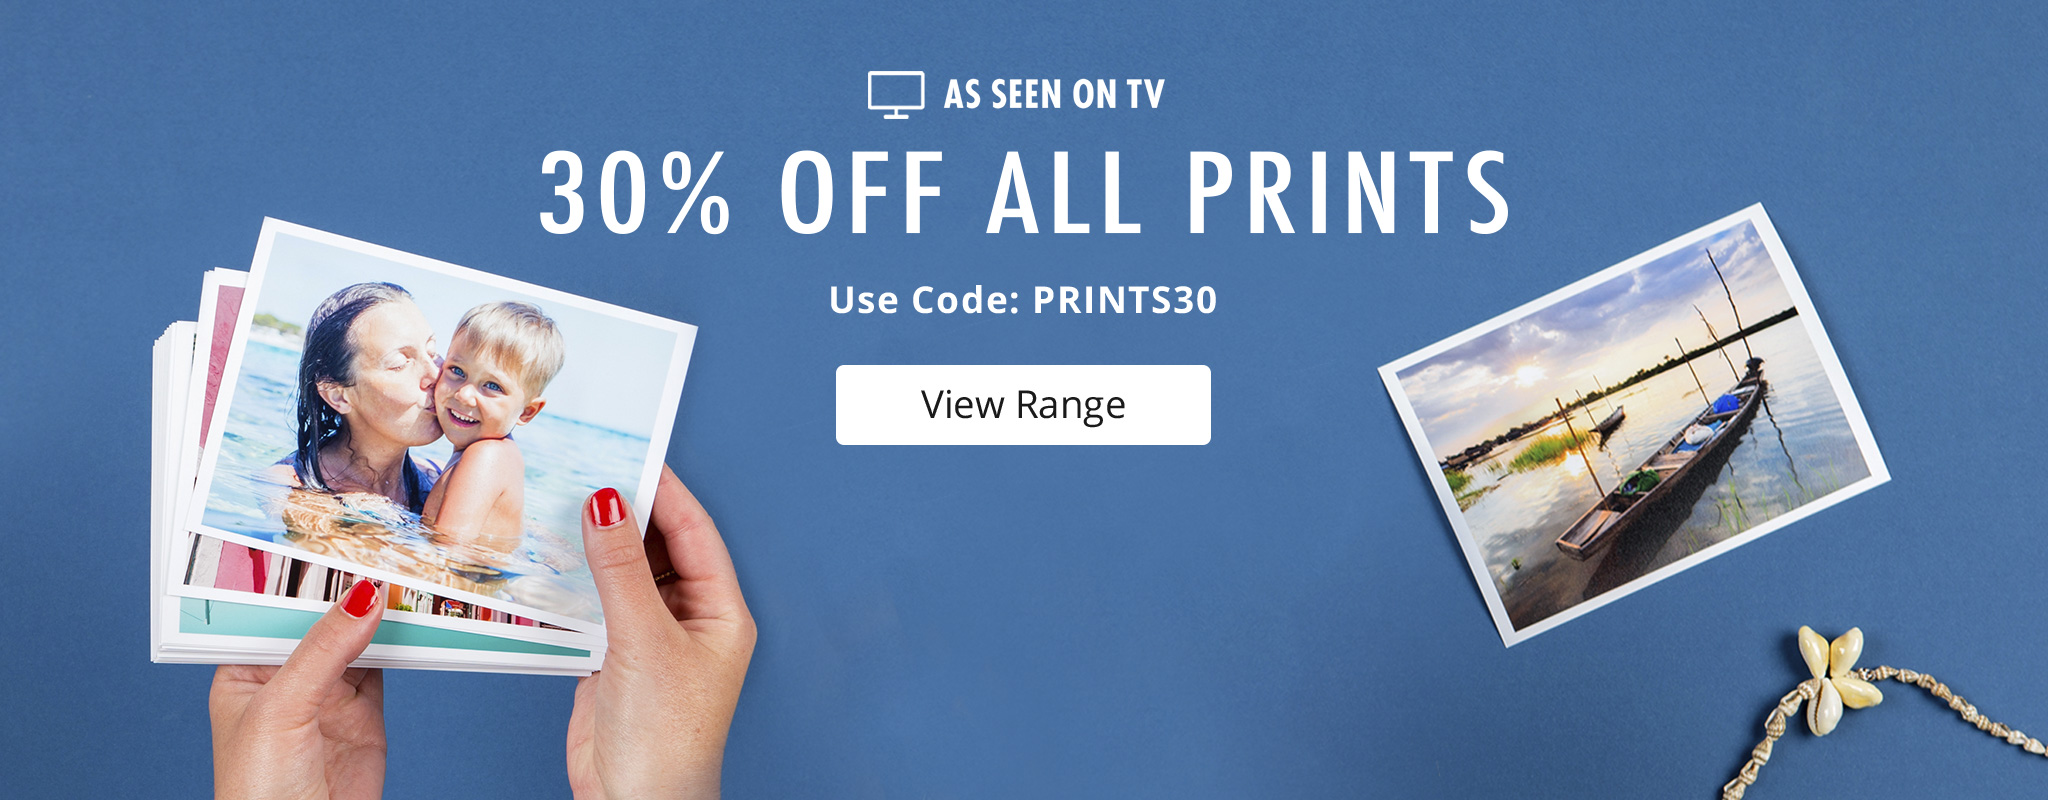 30% off All Prints